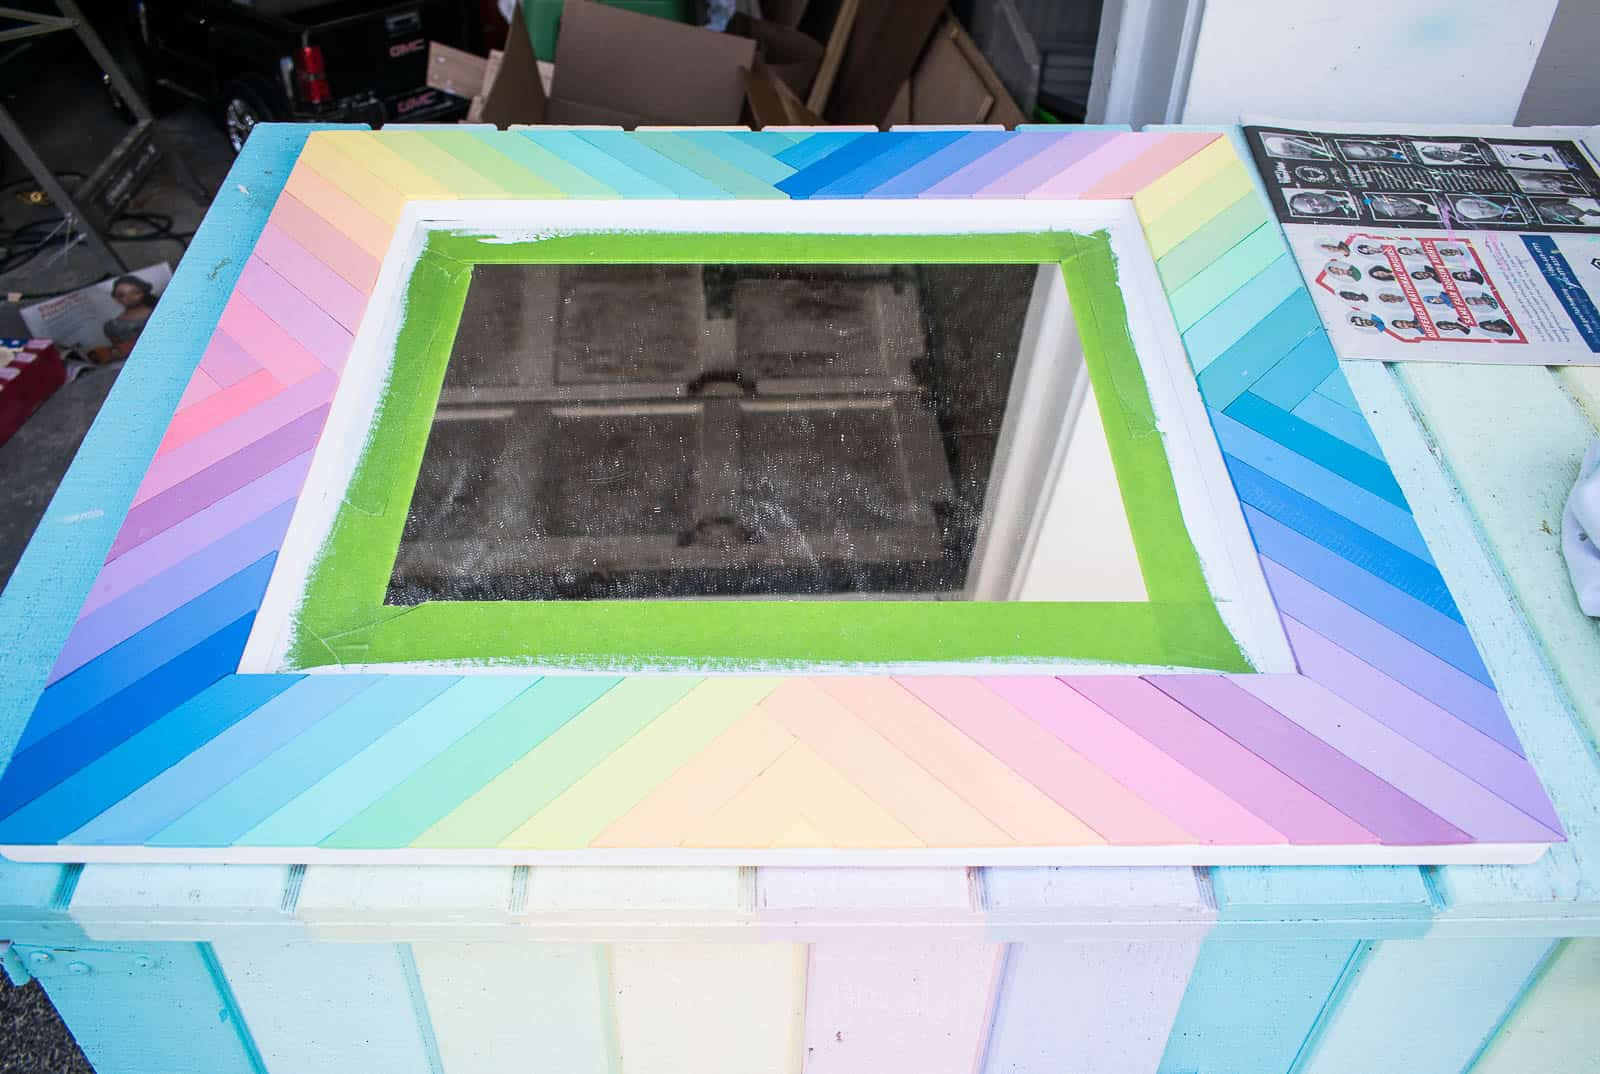 paint stirrers glued to the mirror